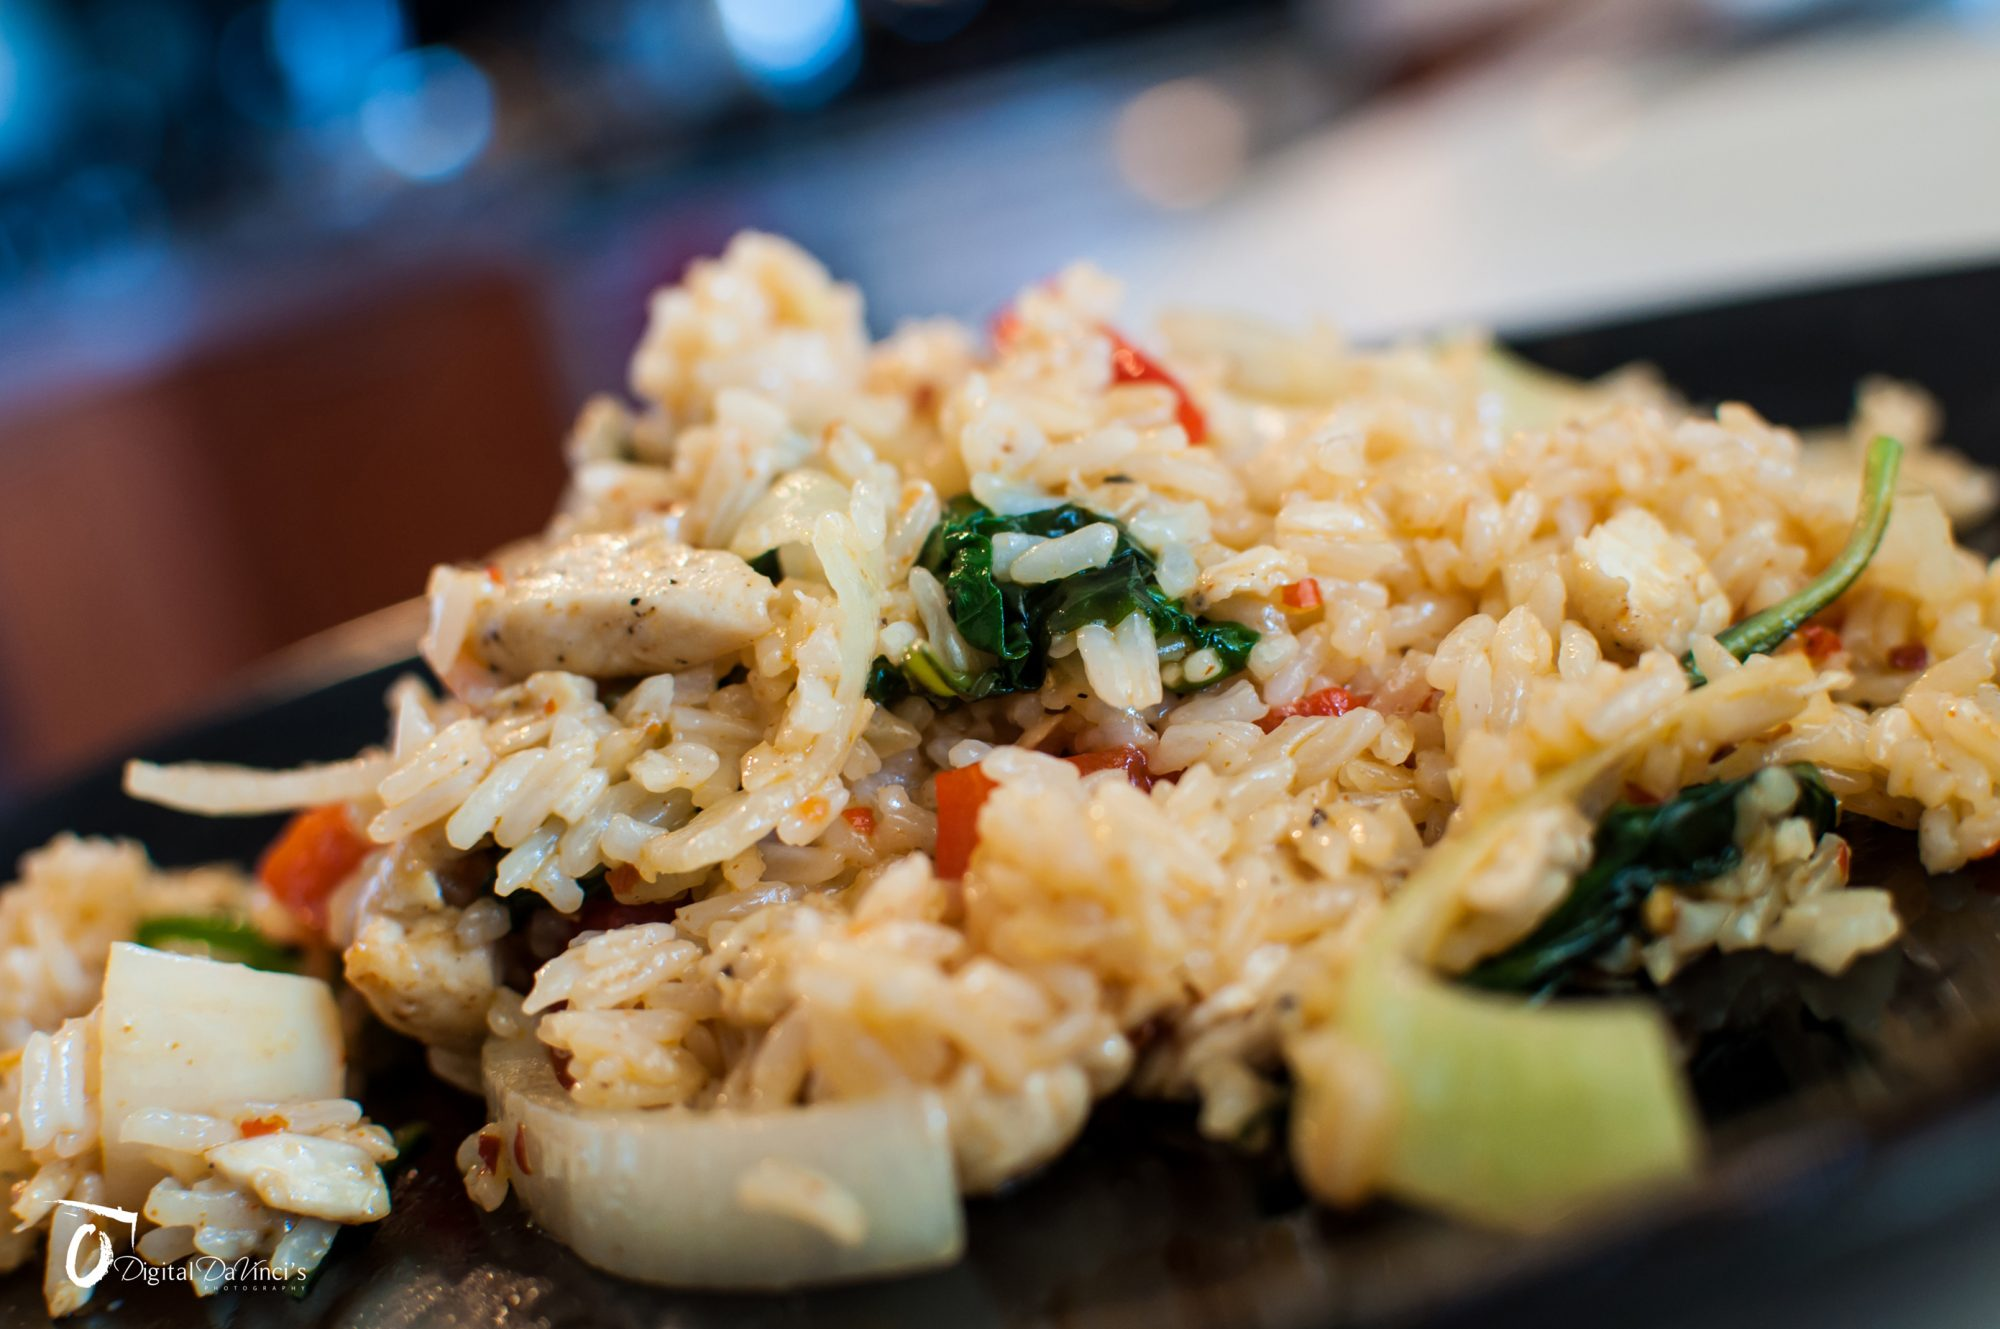 803638-Thai-Spicy-Basil-Chicken-Fried-Rice-photo-by-ccasmoe20.jpg